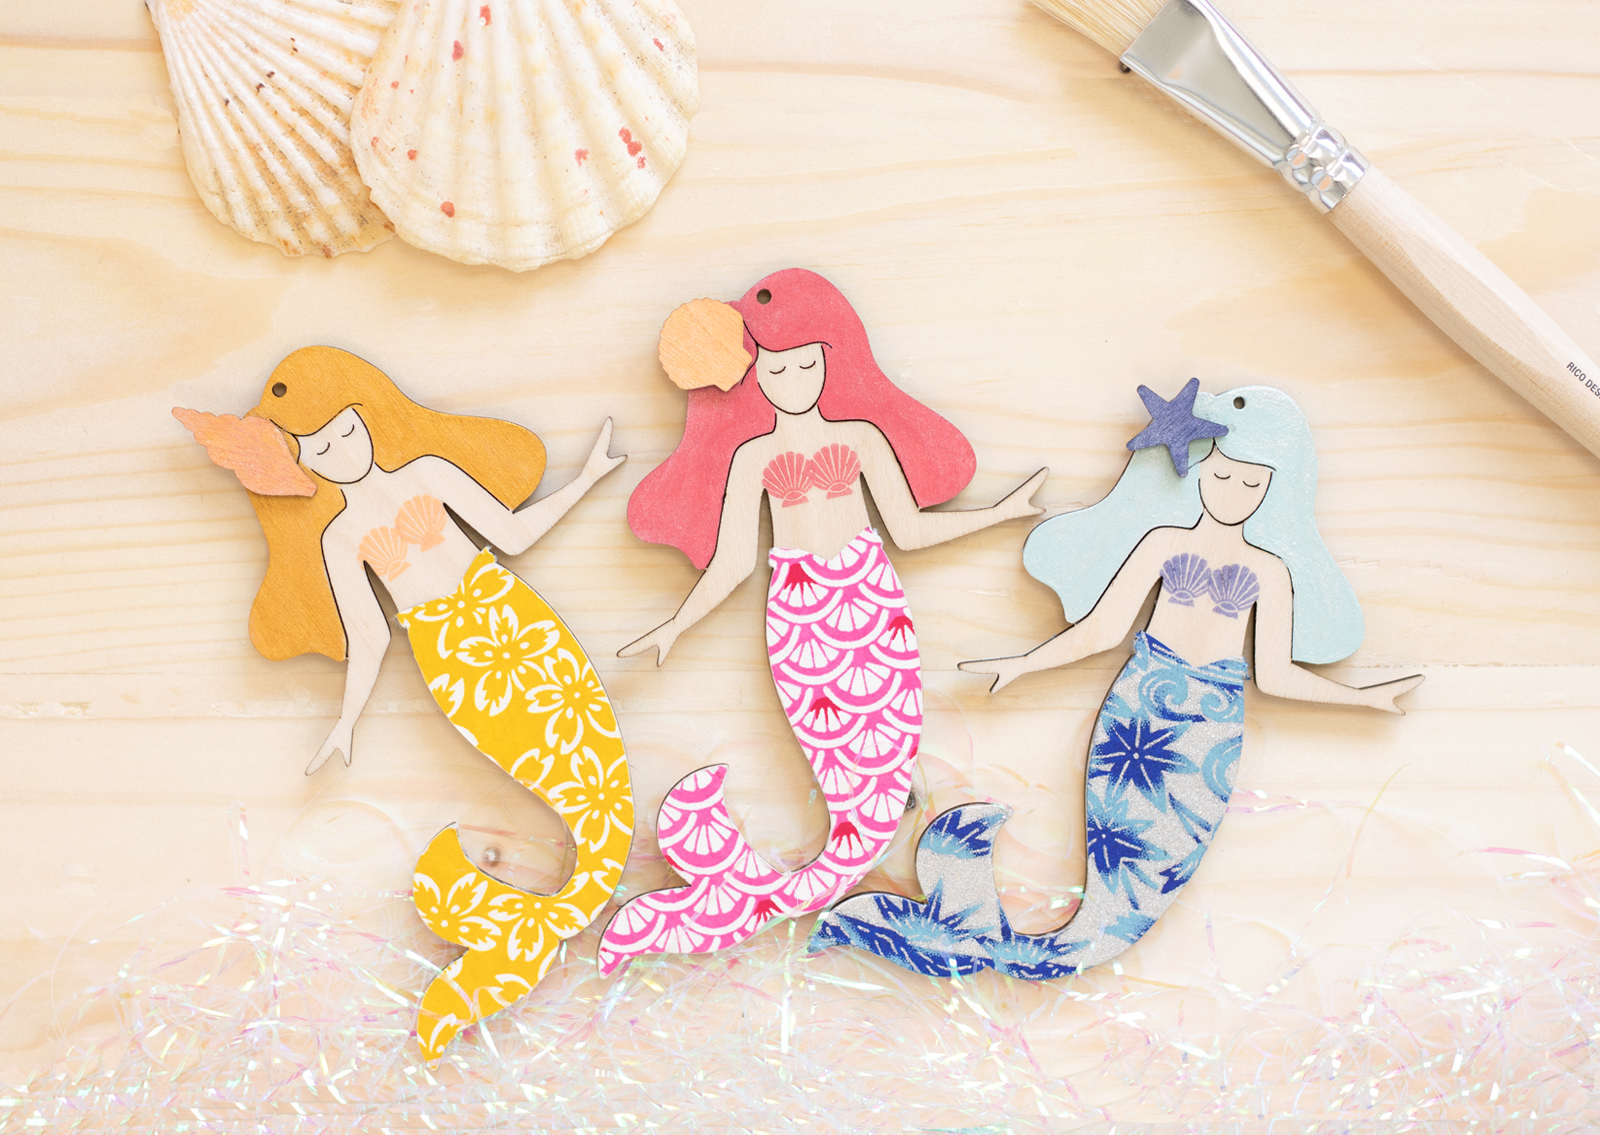 artcuts wooden mermaid craft shapes